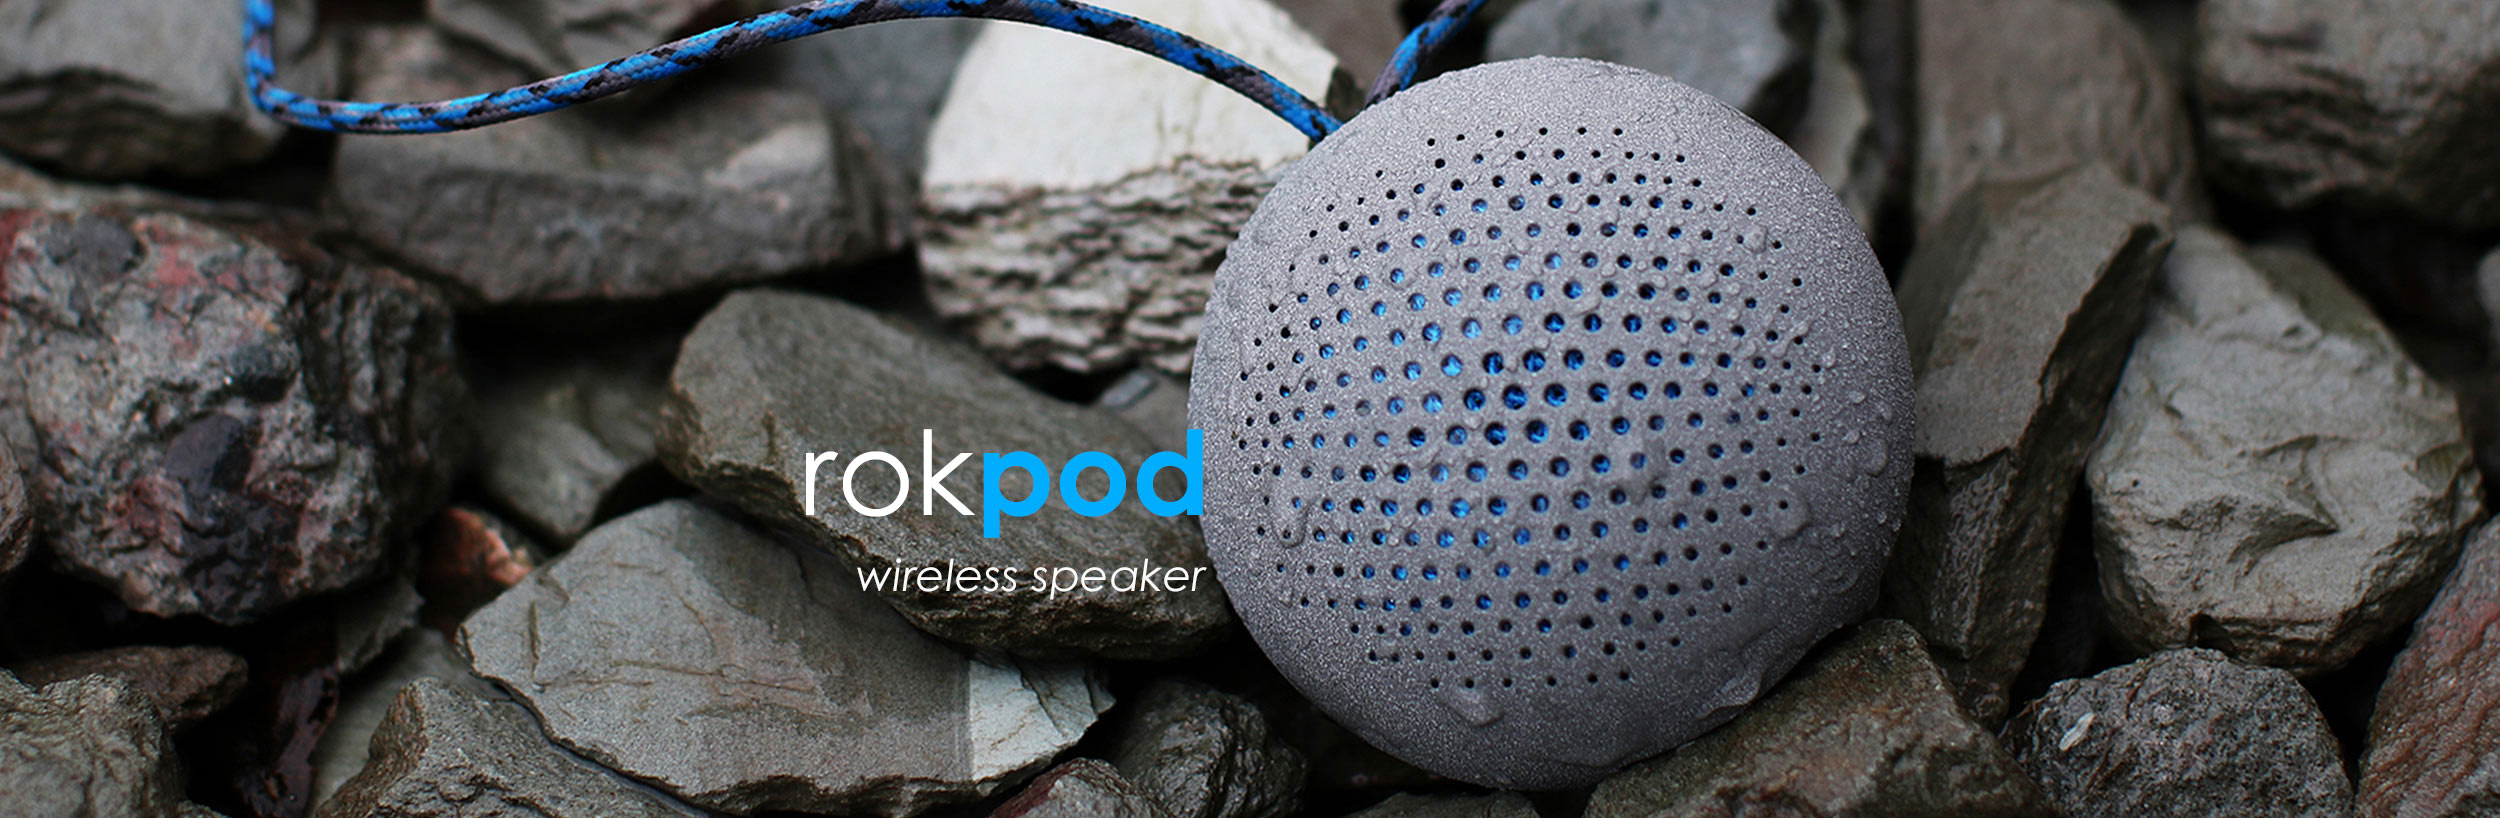 Boompods rokpods